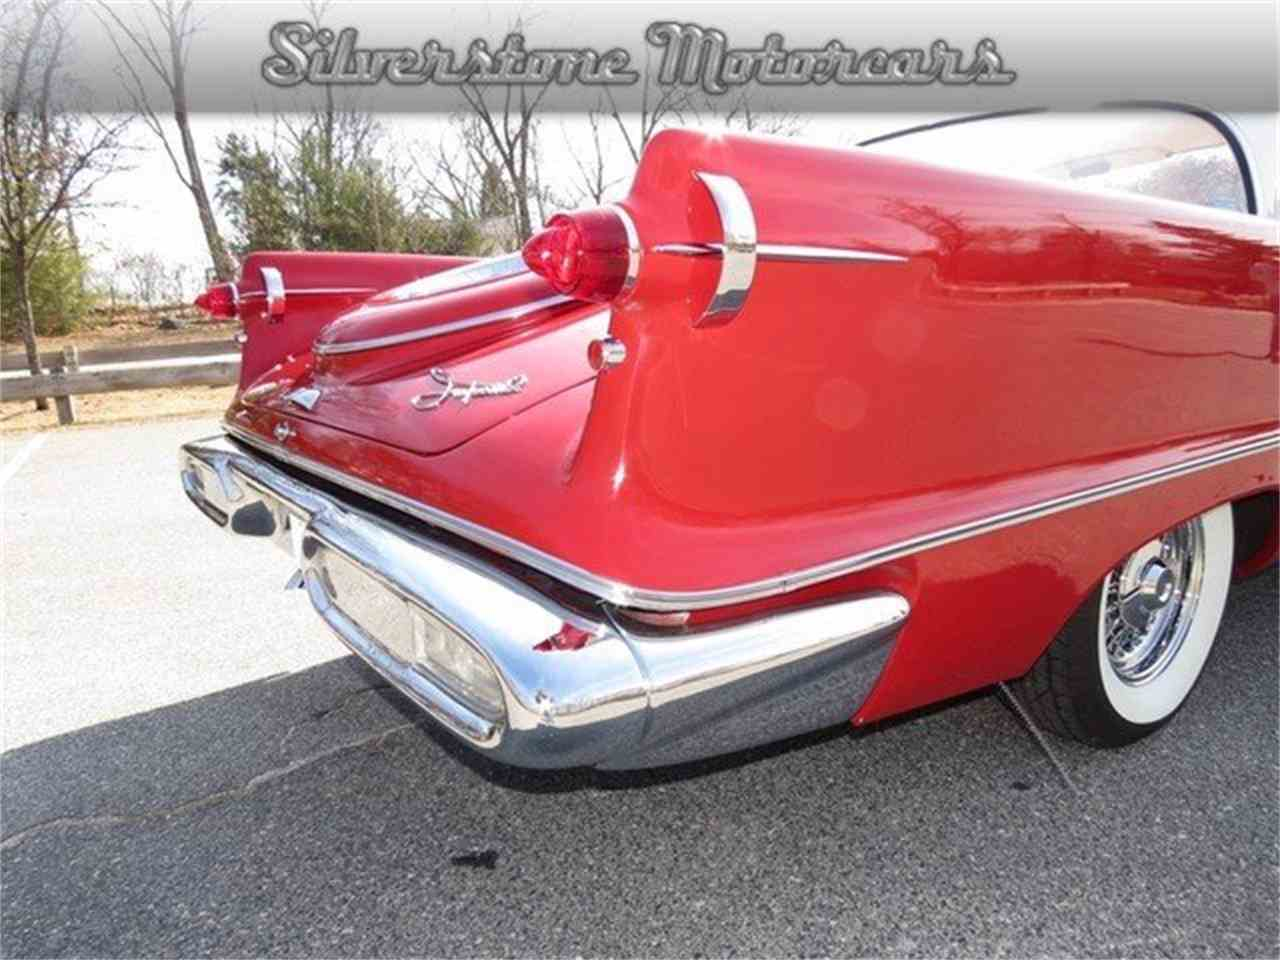 Large Picture of Classic 1958 Chrysler Southampton - $47,950.00 Offered by Silverstone Motorcars - F8I7